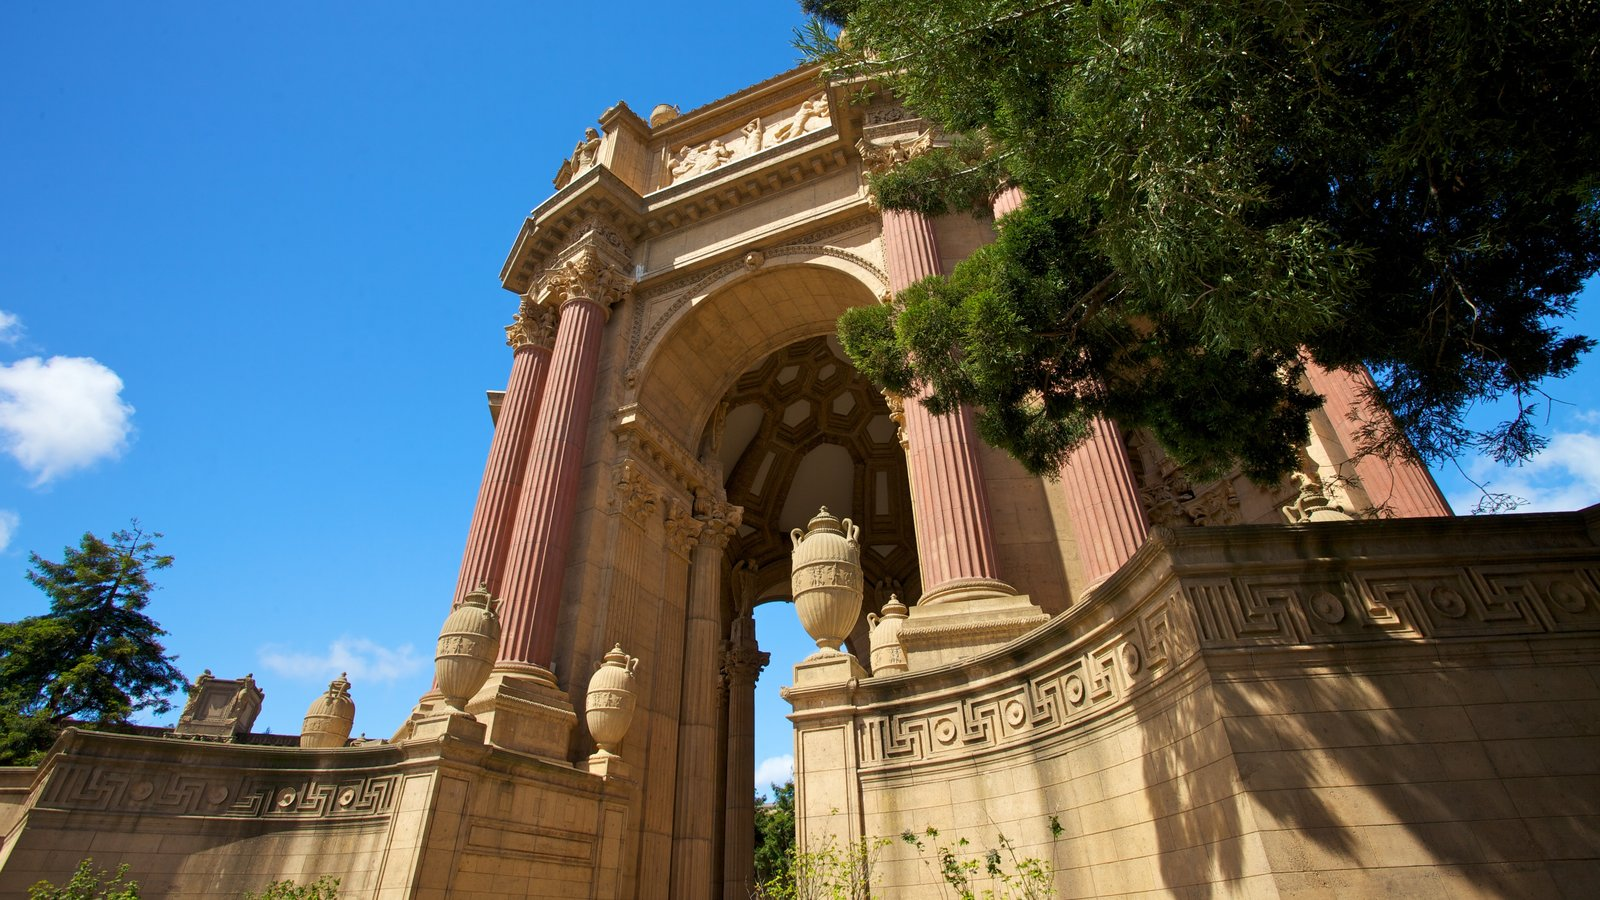 Palace of Fine Arts showing art and a city